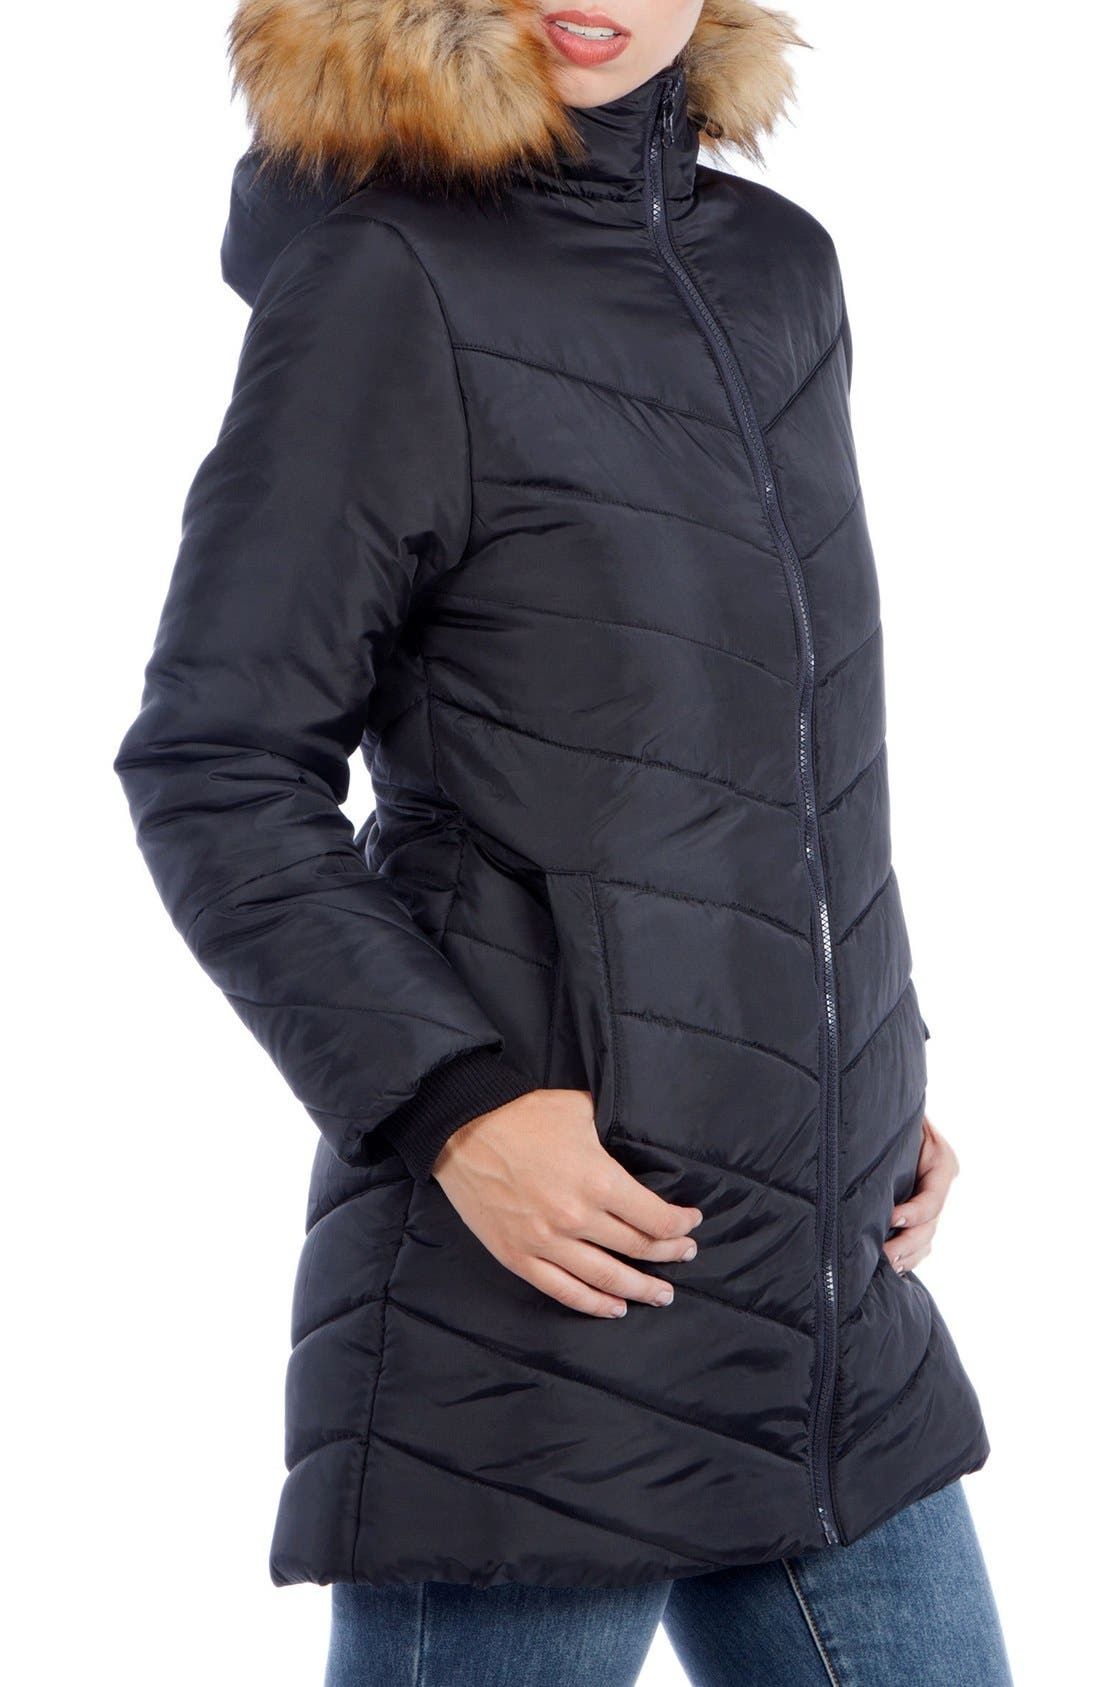 Faux Fur Trim Convertible Puffer 3-in-1 Maternity Jacket,                             Alternate thumbnail 8, color,                             BLACK